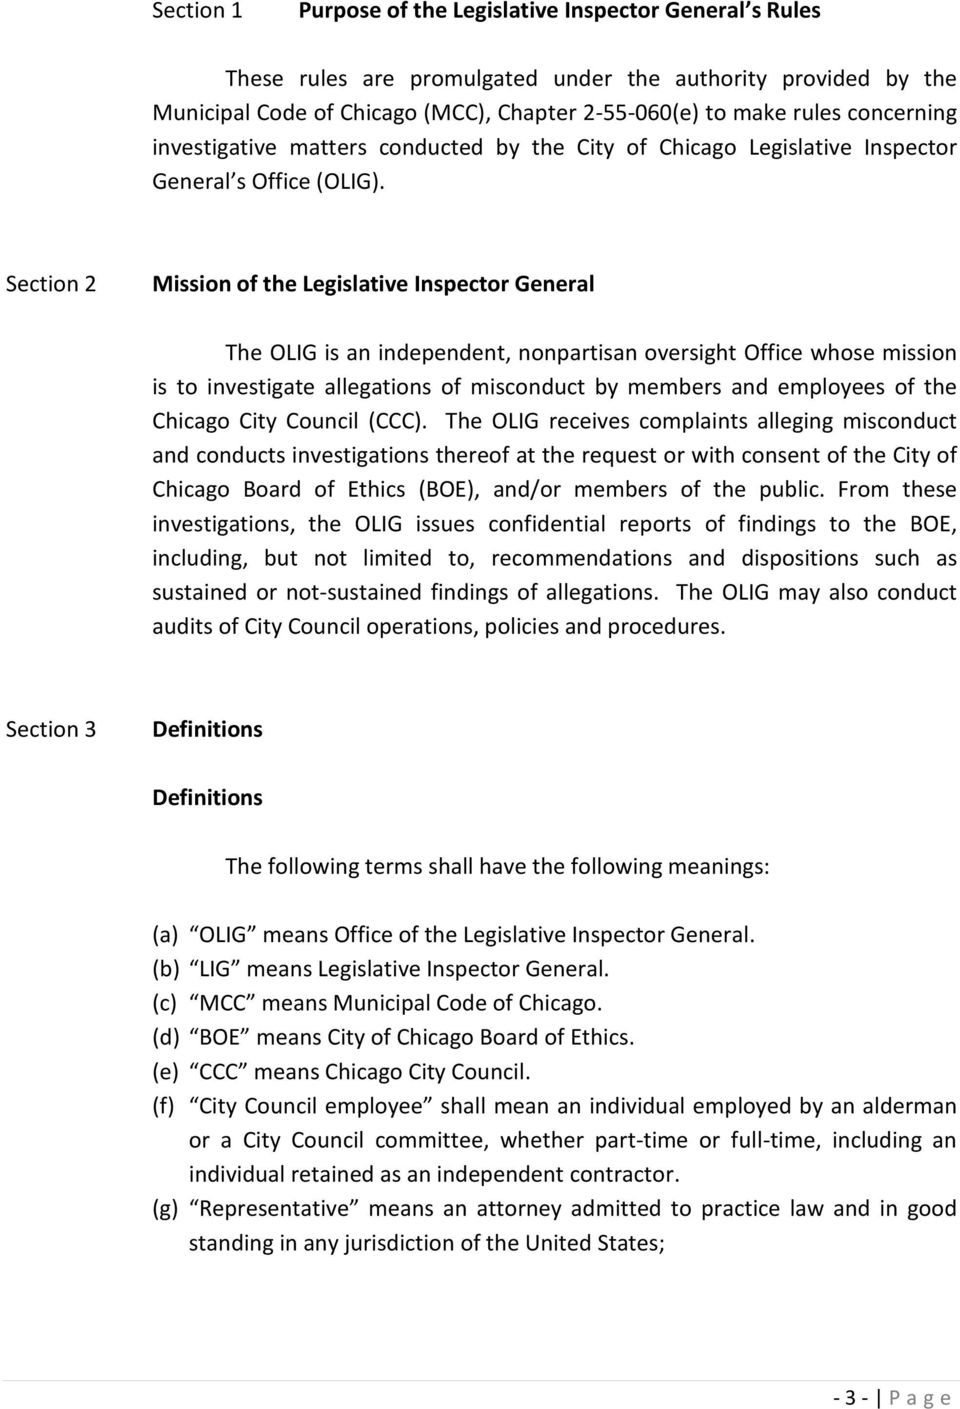 Section 2 Mission of the Legislative Inspector General The OLIG is an independent, nonpartisan oversight Office whose mission is to investigate allegations of misconduct by members and employees of